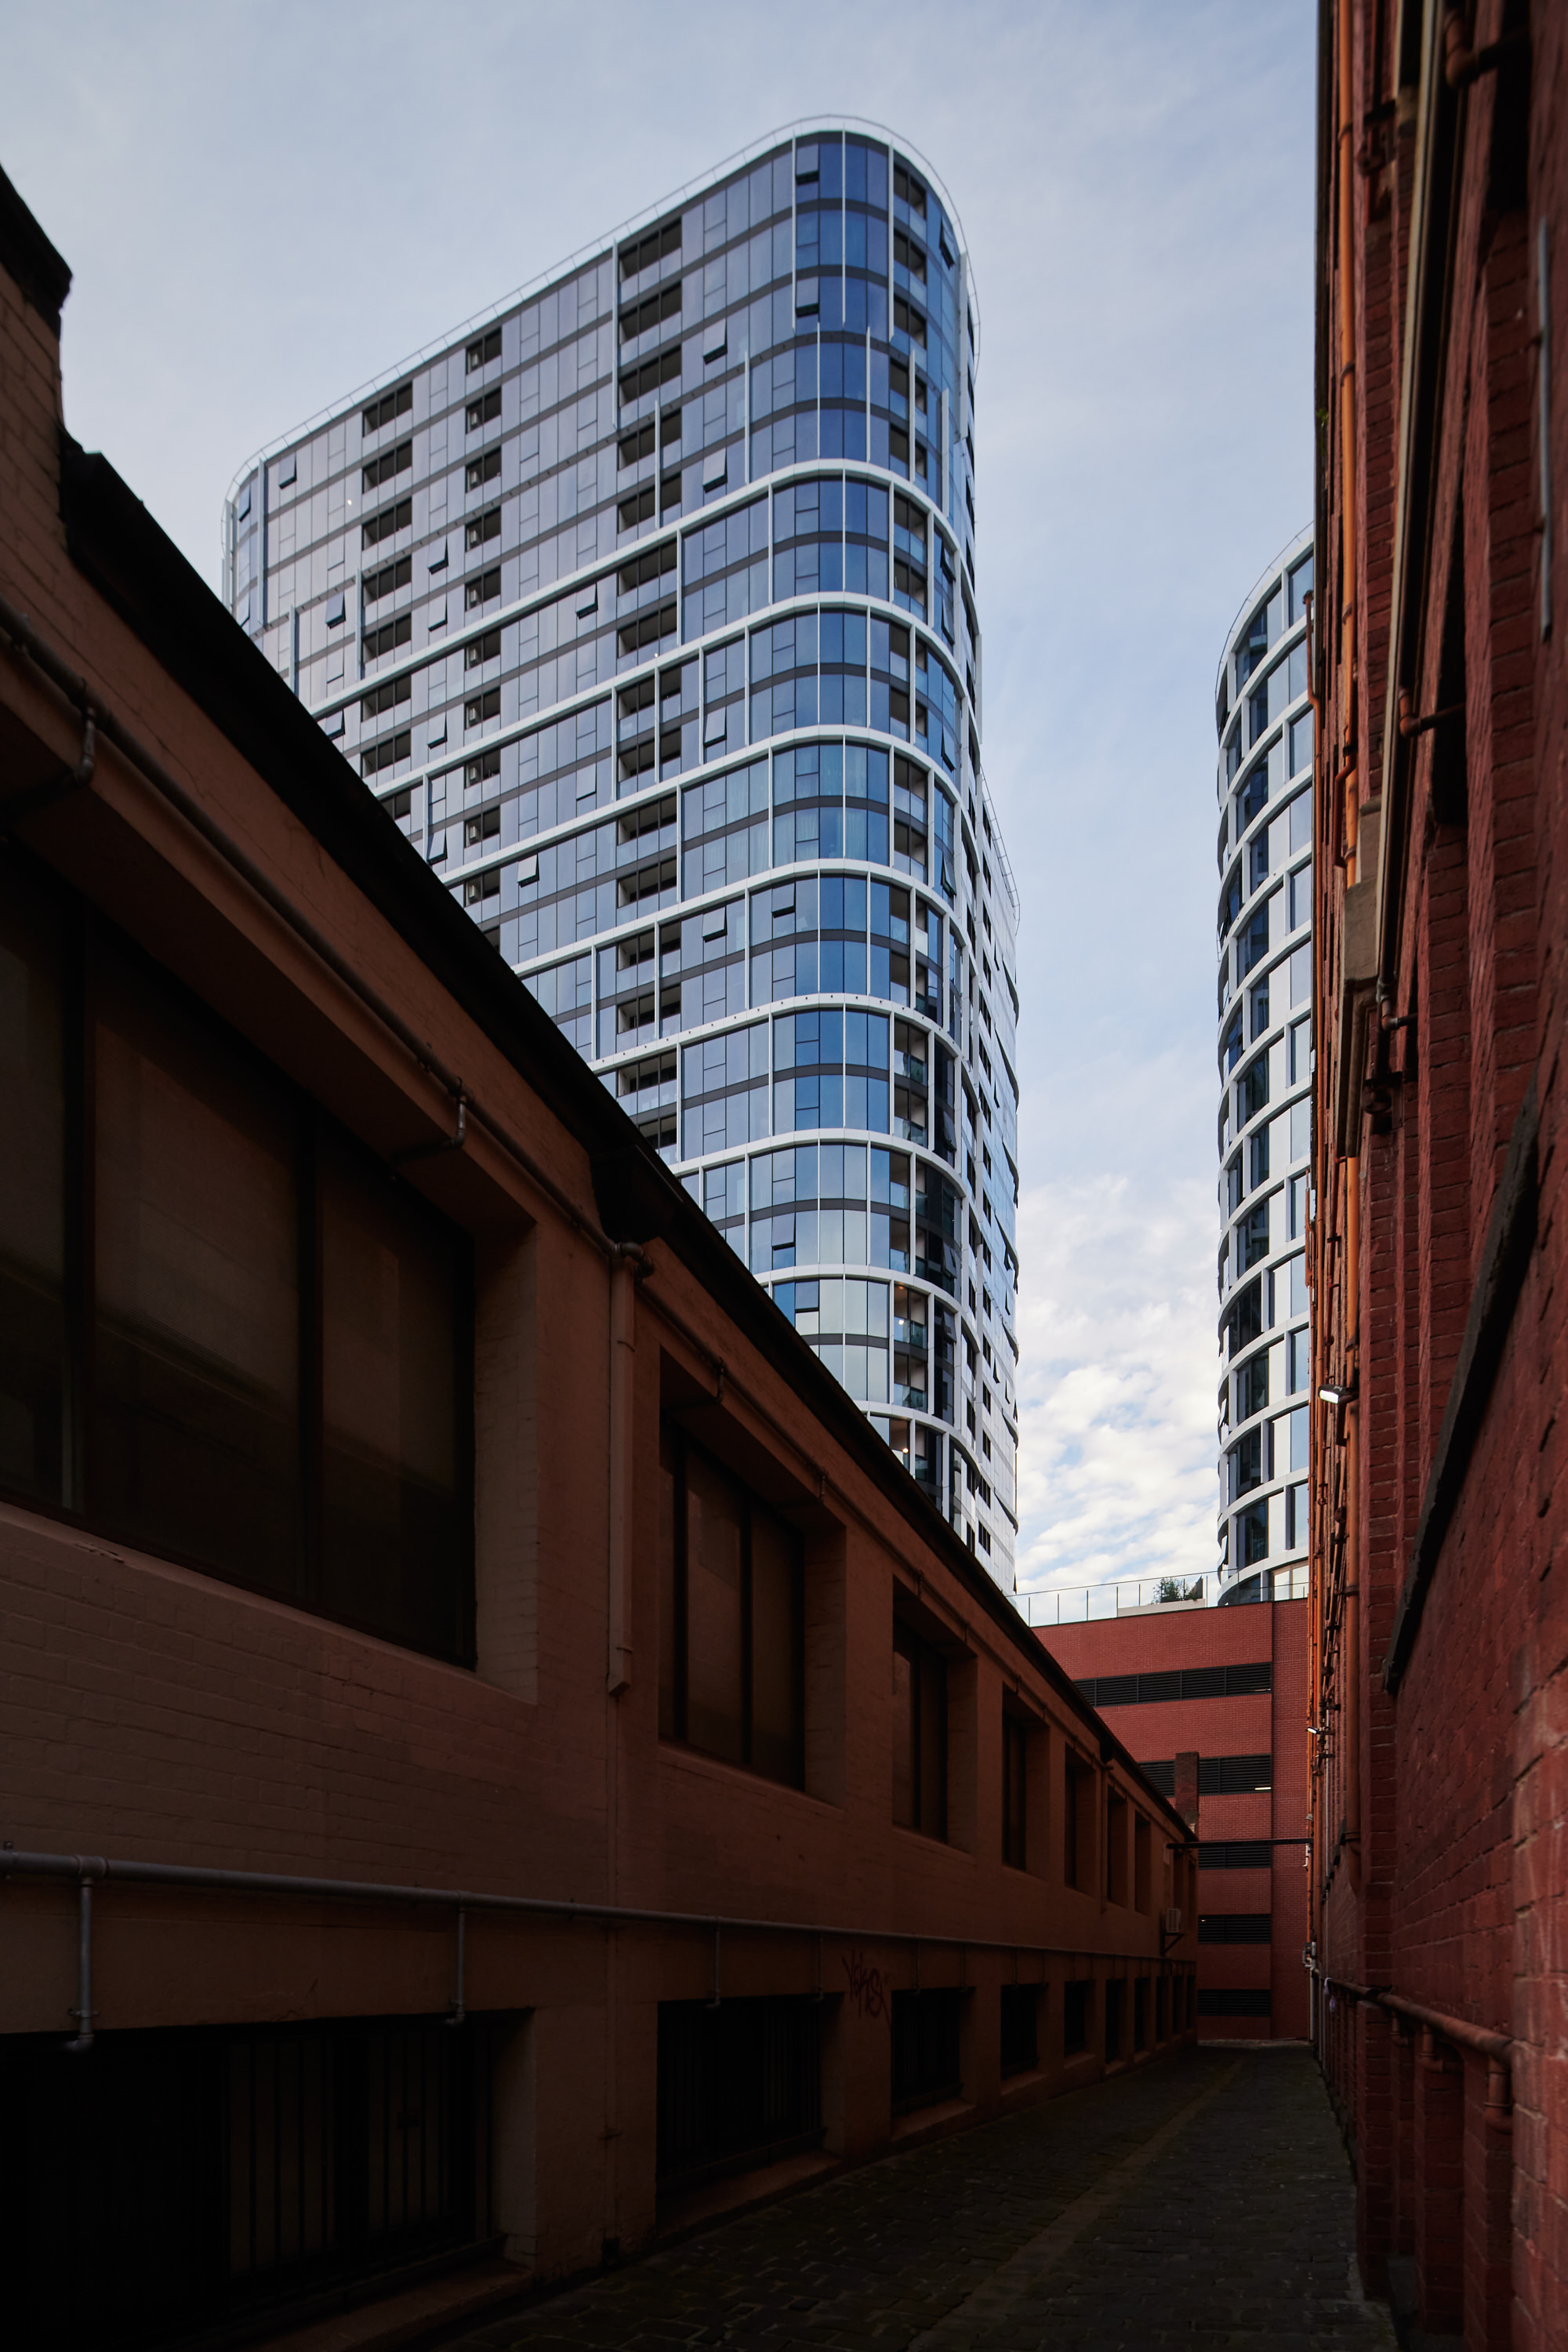 373 Spencer Street by Bruce Henderson Architects